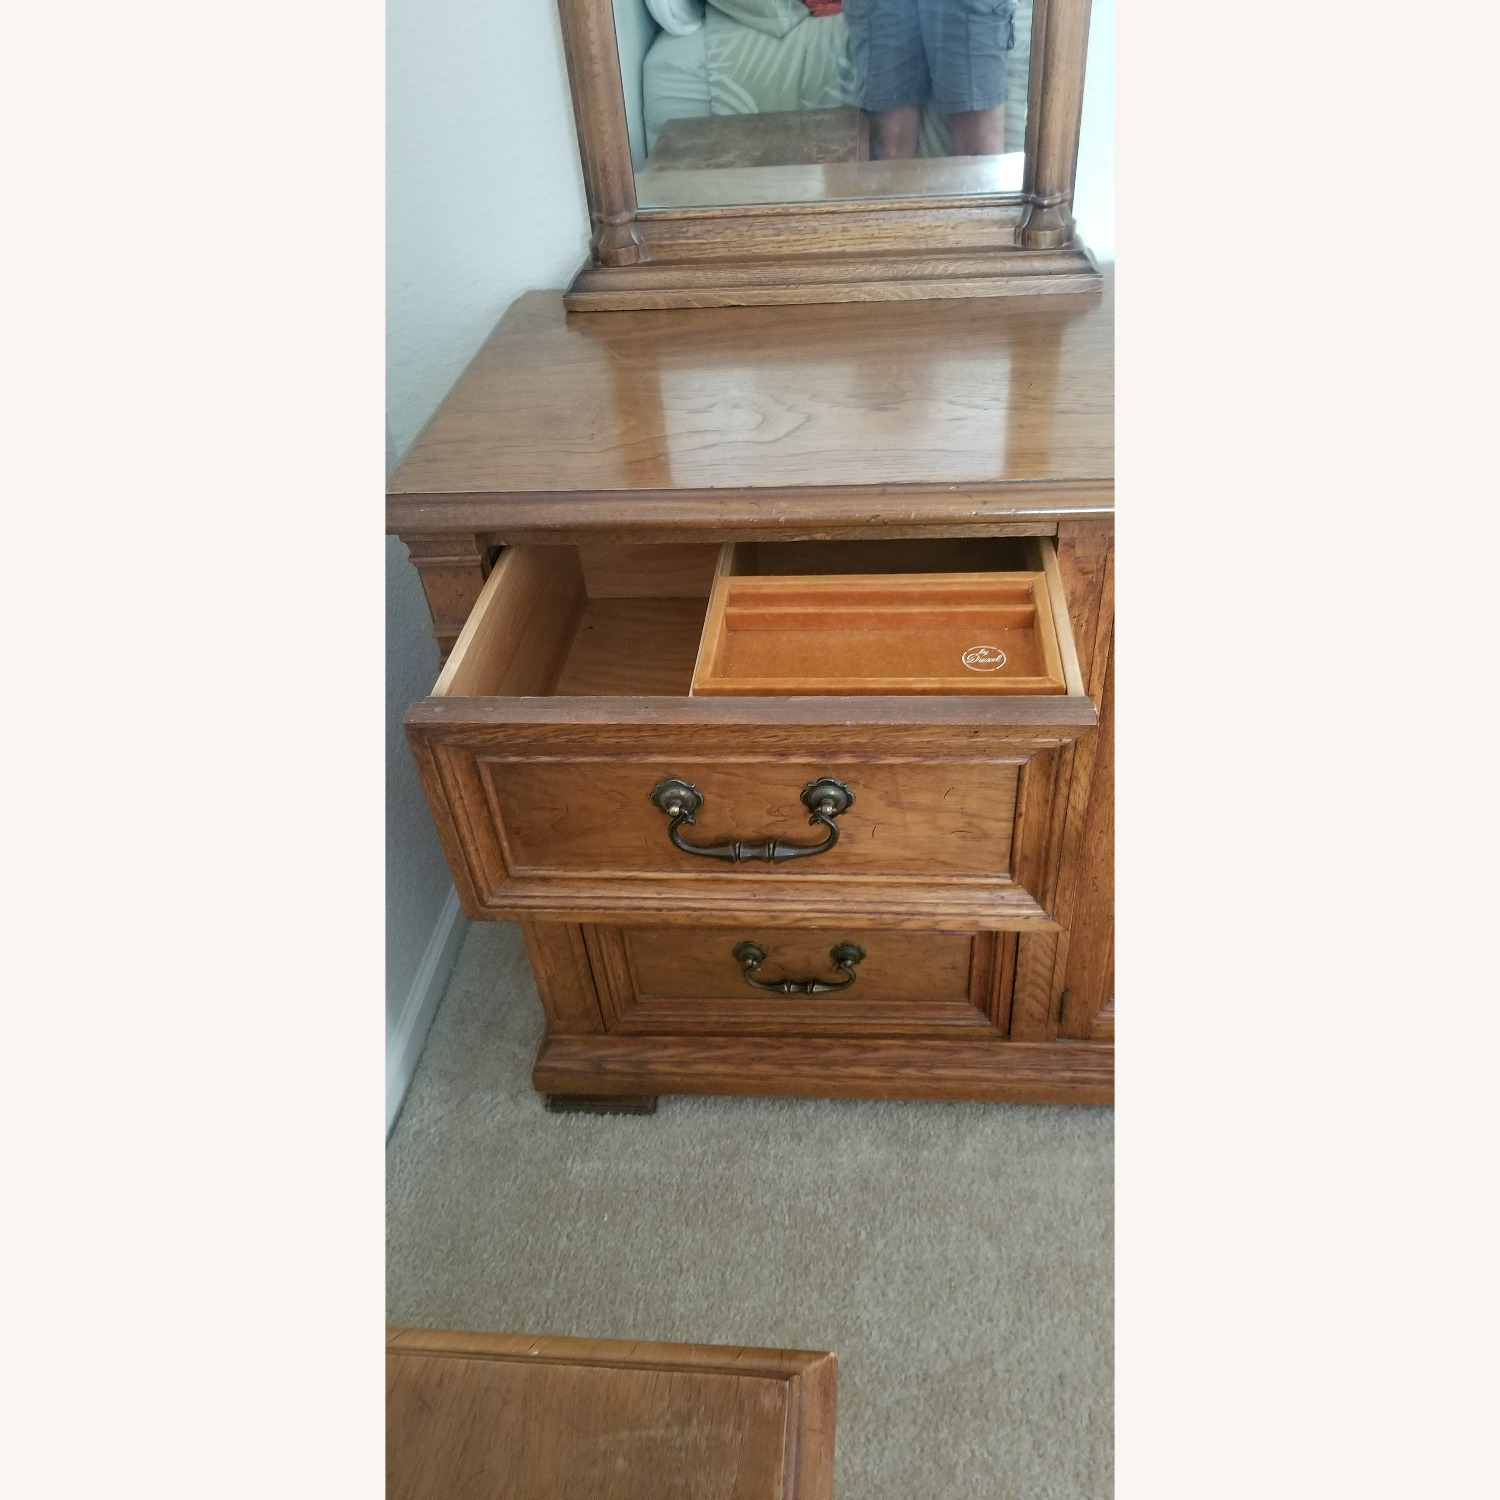 Vintage Drexel Dresser with two Large Mirrors - image-4